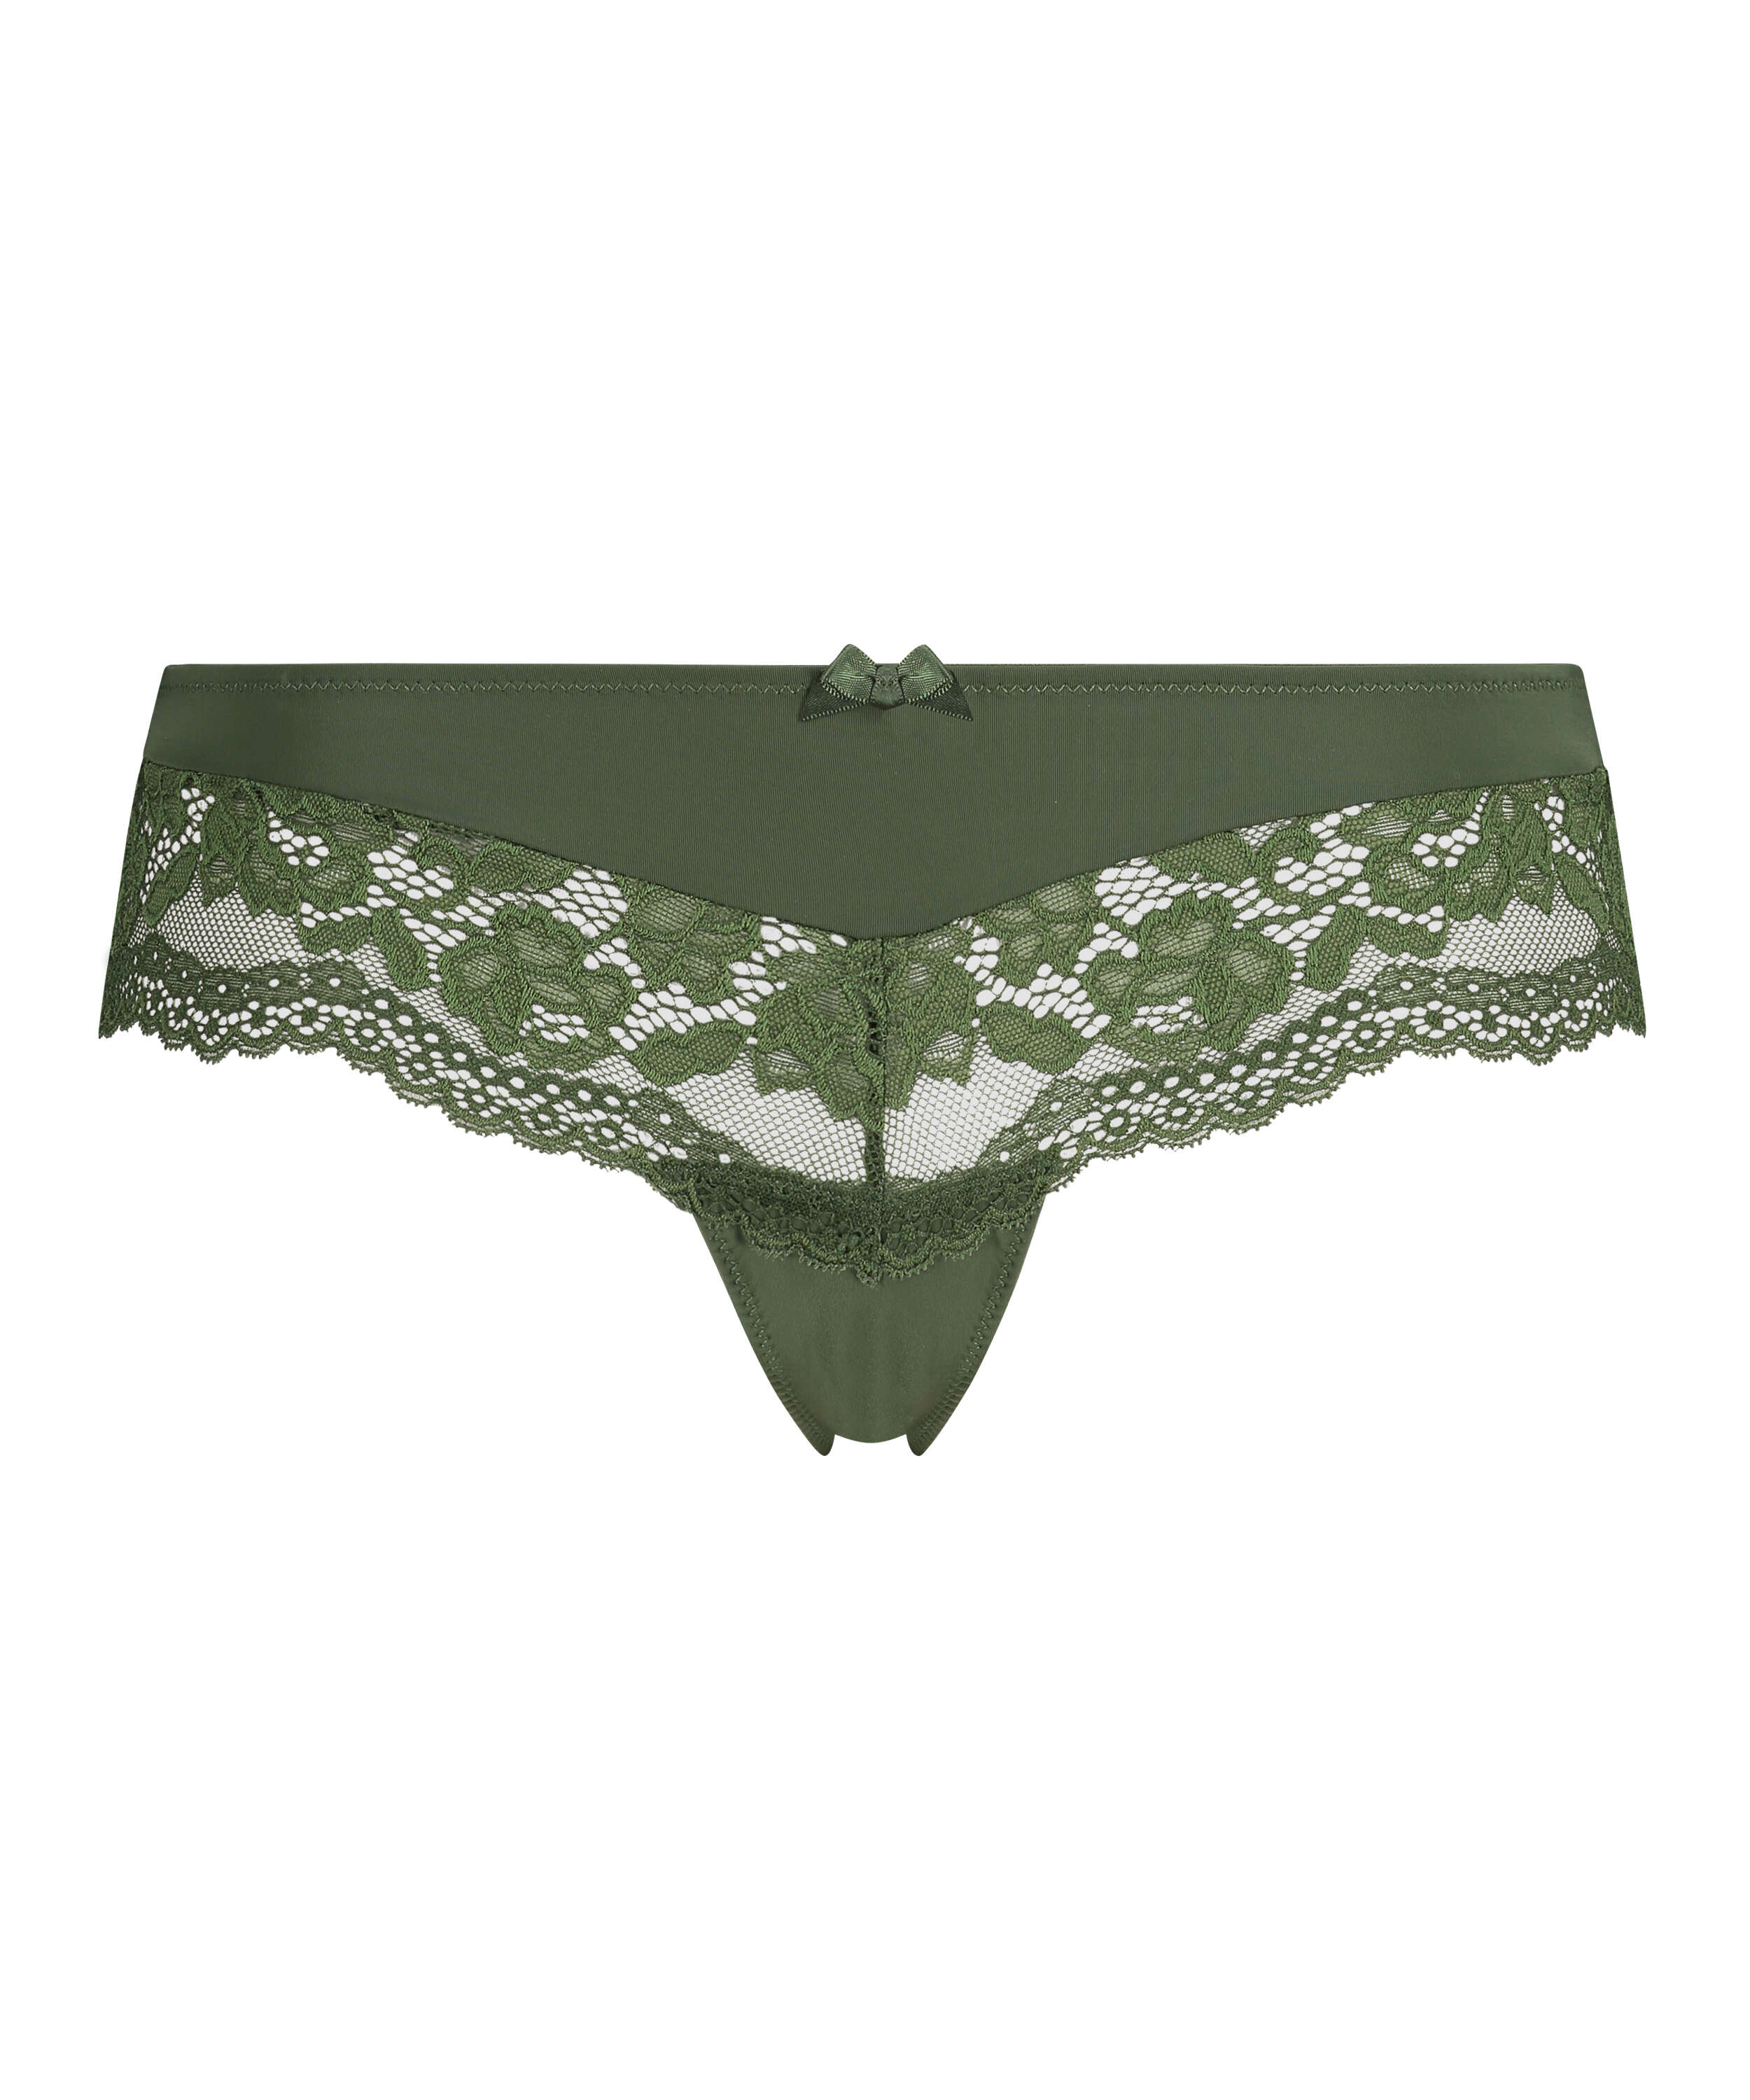 Valencia Brazilian Shorts, Green, main